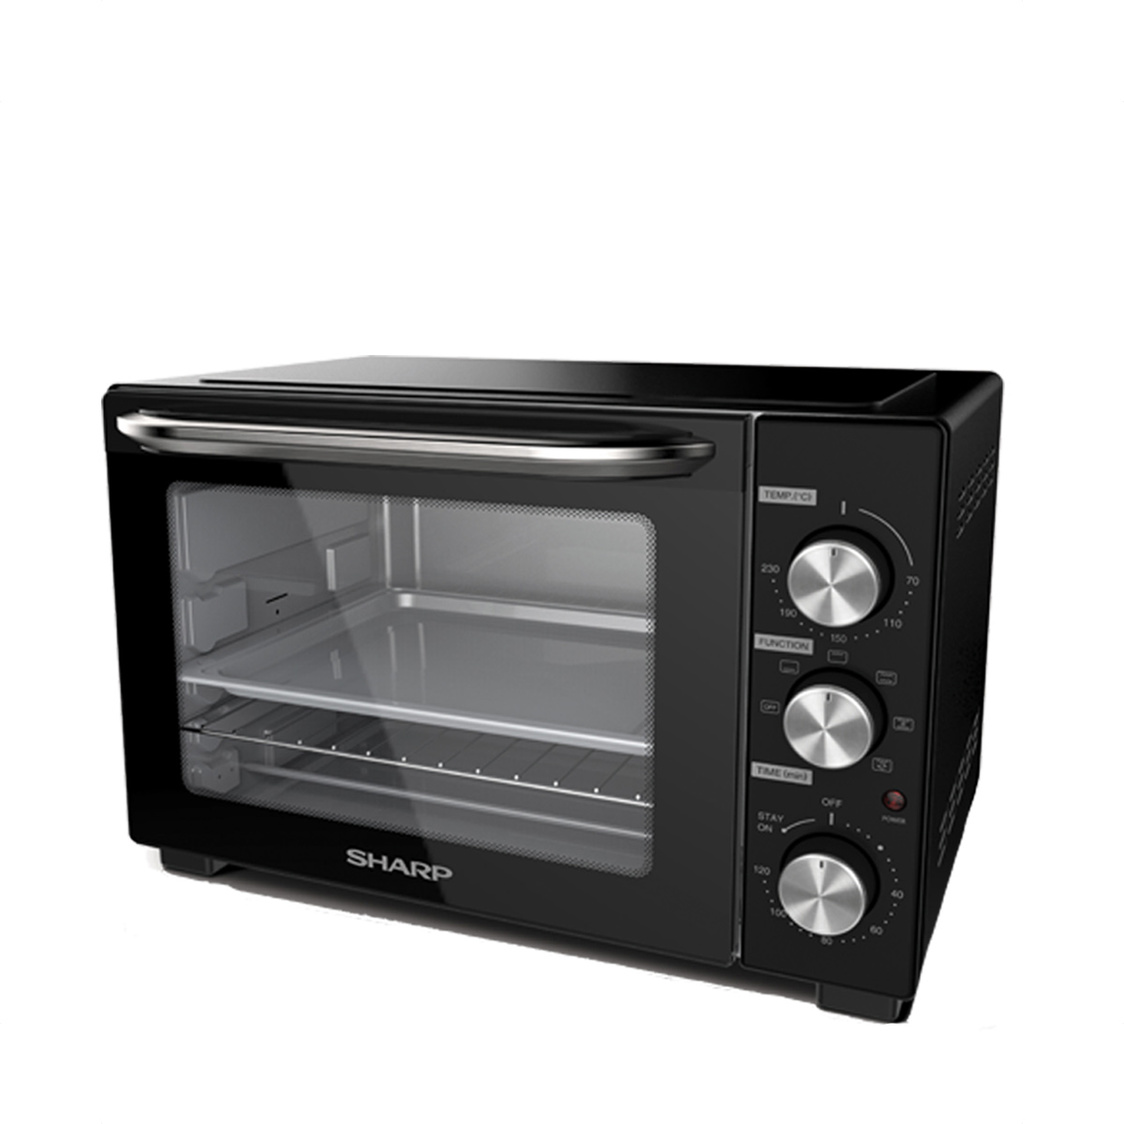 Oven Toaster With Rotisserie Fork And Convection 32L EO-327R-BK